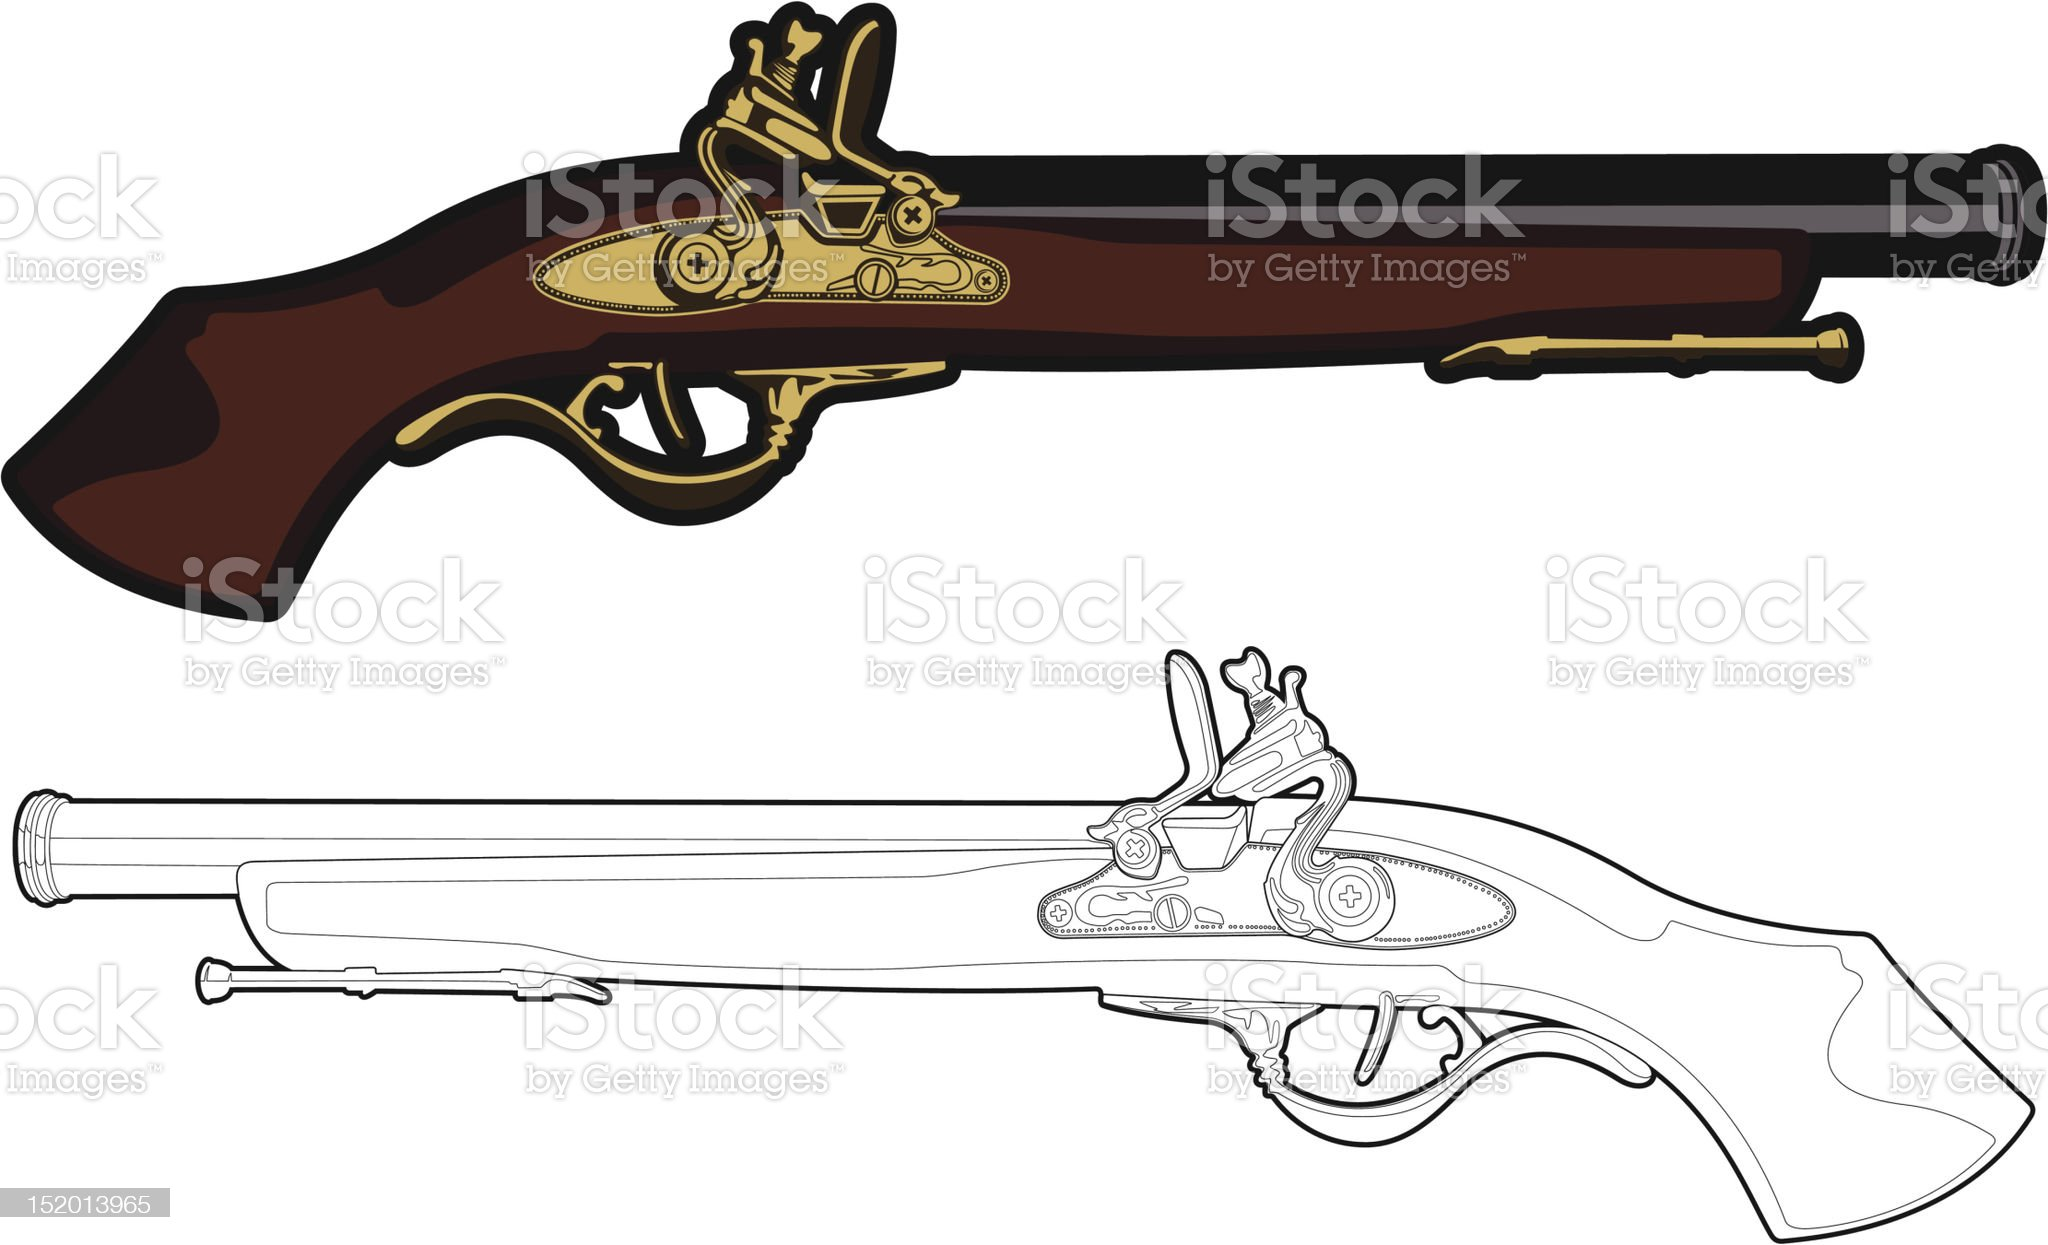 Antique Musket royalty-free stock vector art